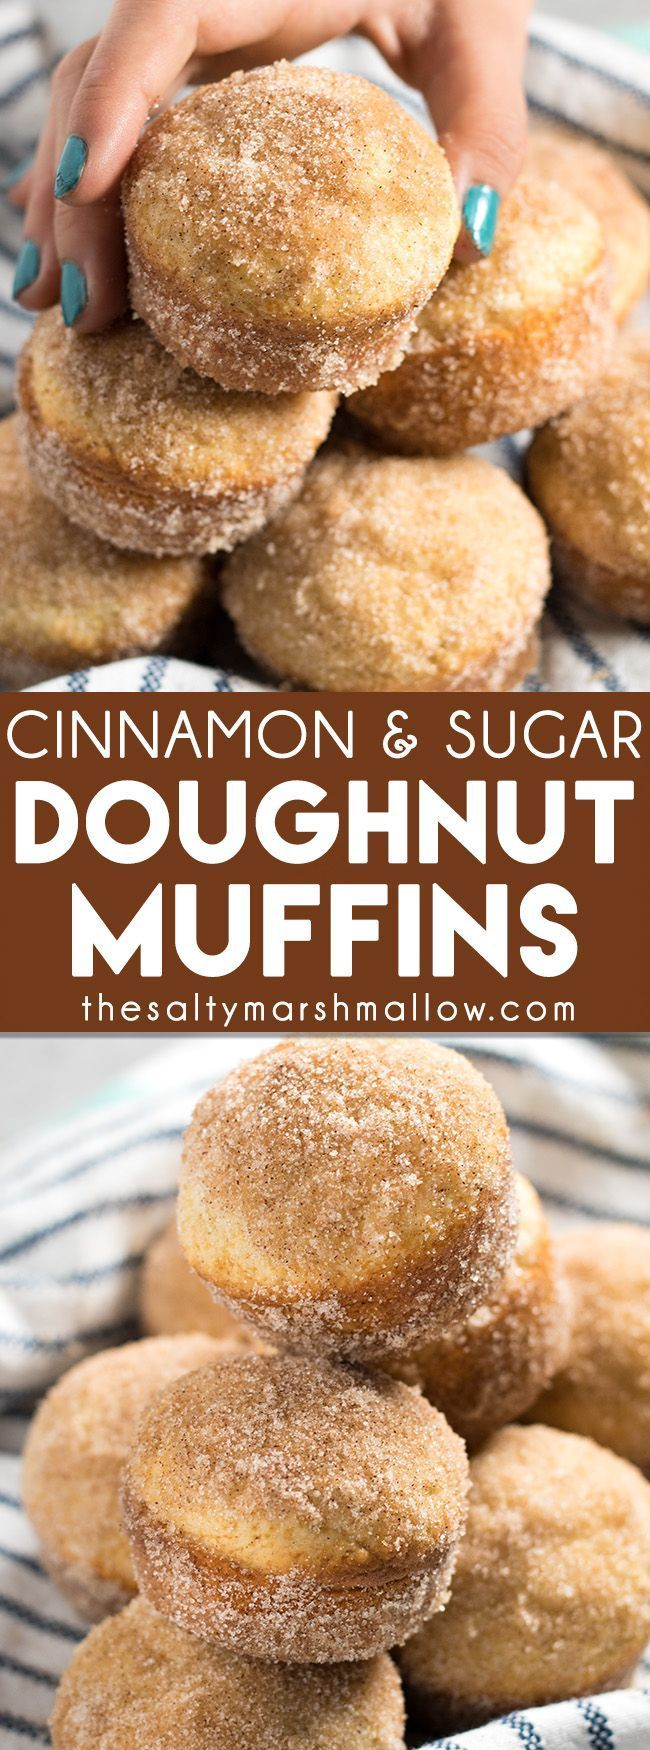 Cinnamon Sugar Donut Muffins: An easy recipe for cinnamon sugar muffins that taste like an old fashioned donut! These simple muffins bake up in no time and are perfect for breakfast. https://bestproductsfor.com/food